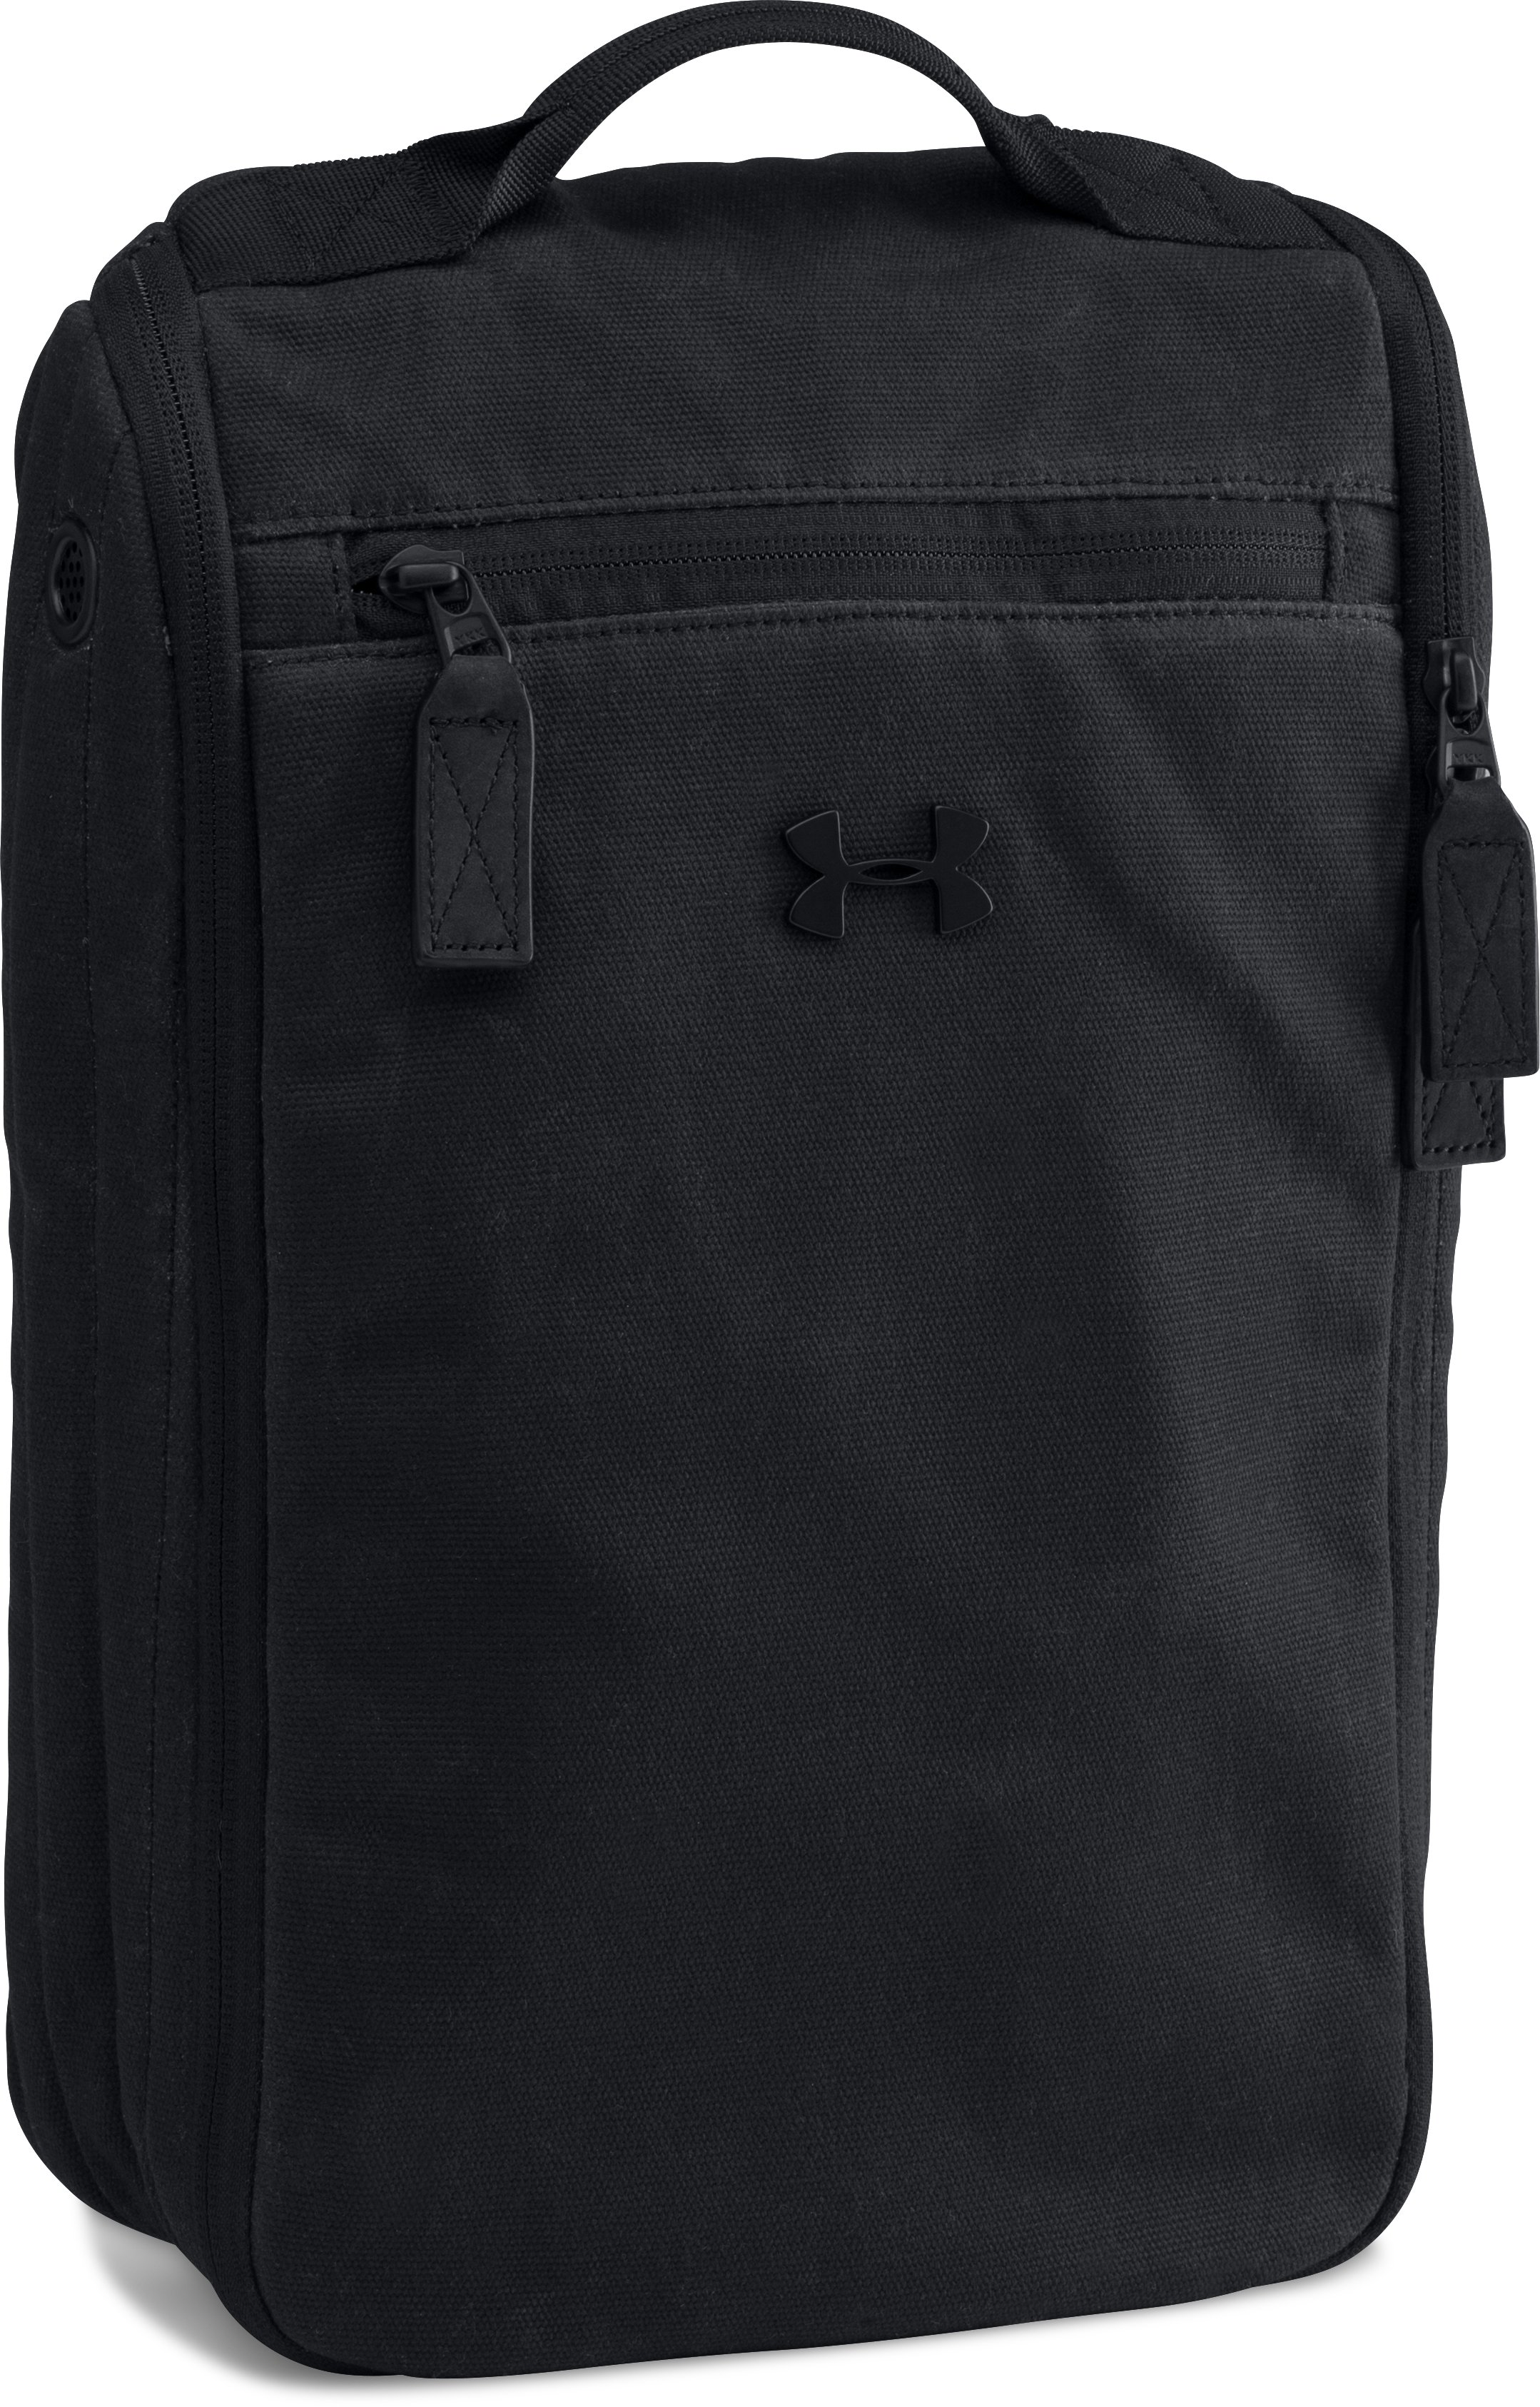 UA Country Club Shoe Bag, Black